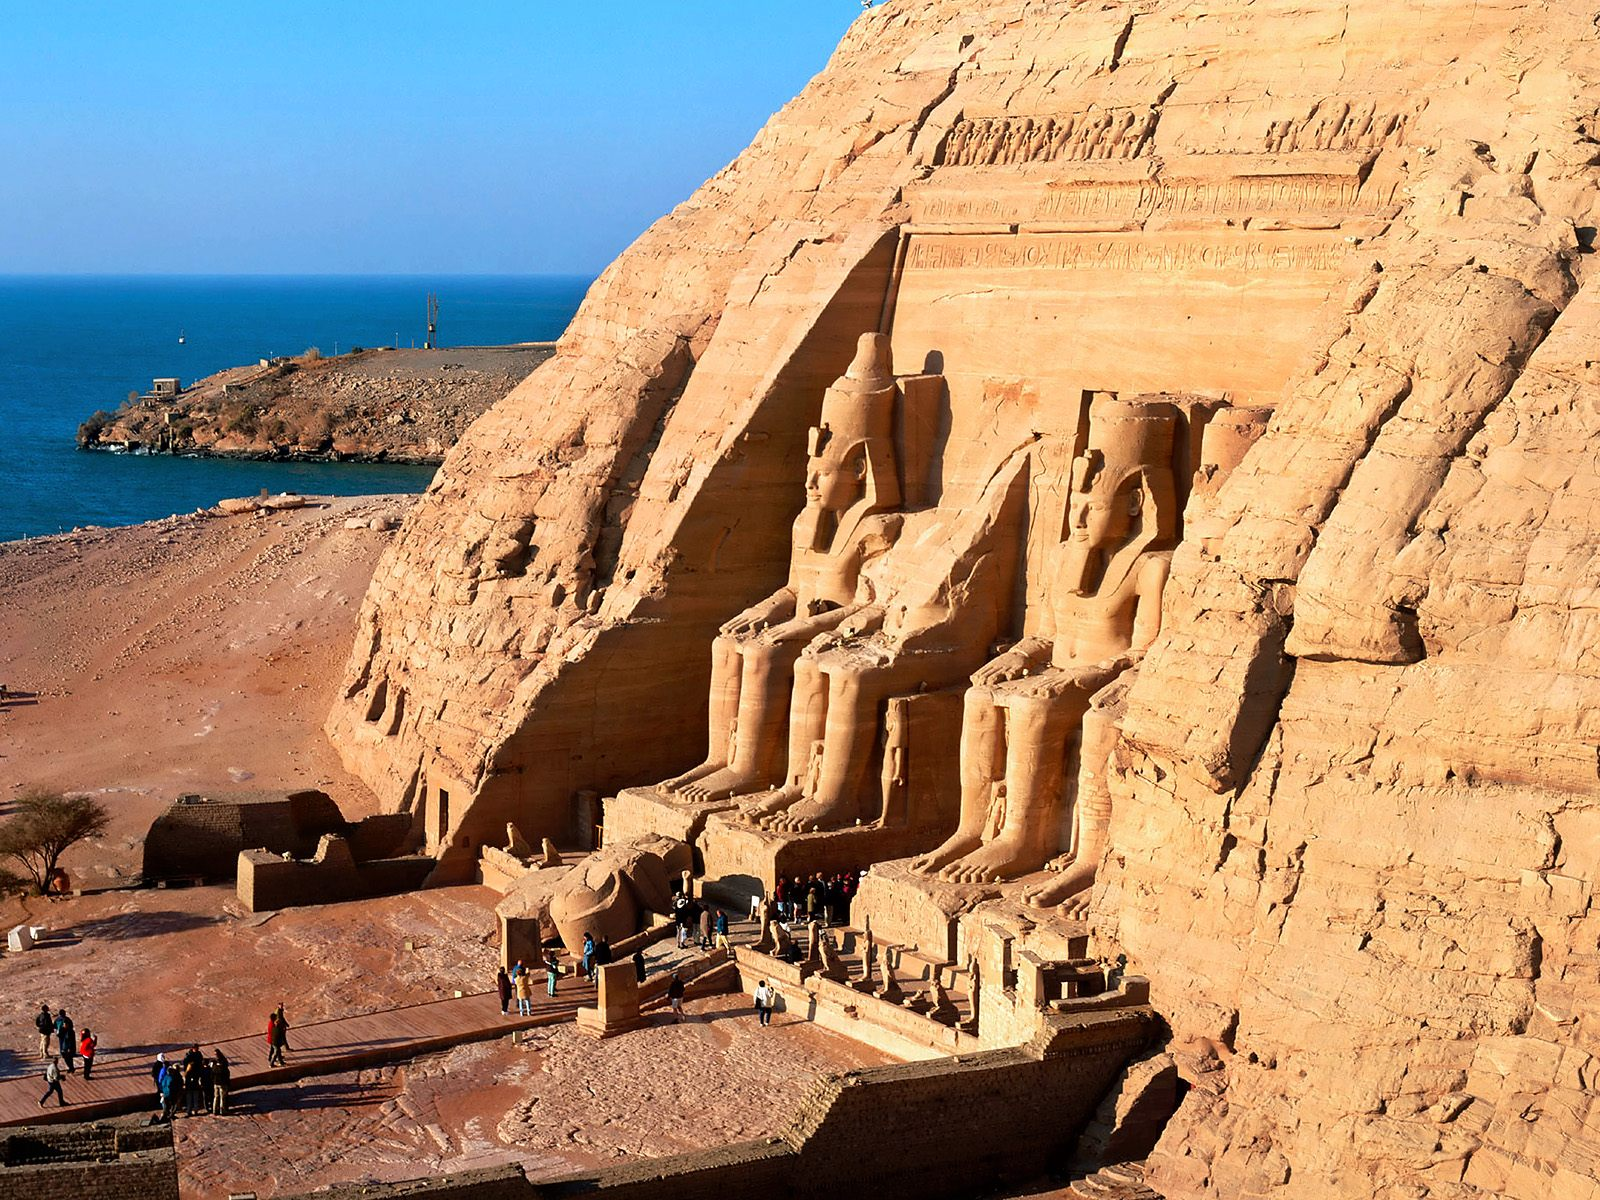 egypt tourism Egypt's economy is heavily dependent on tourism after the uprising against the  then president mubarak in 2011, the subsequent political.